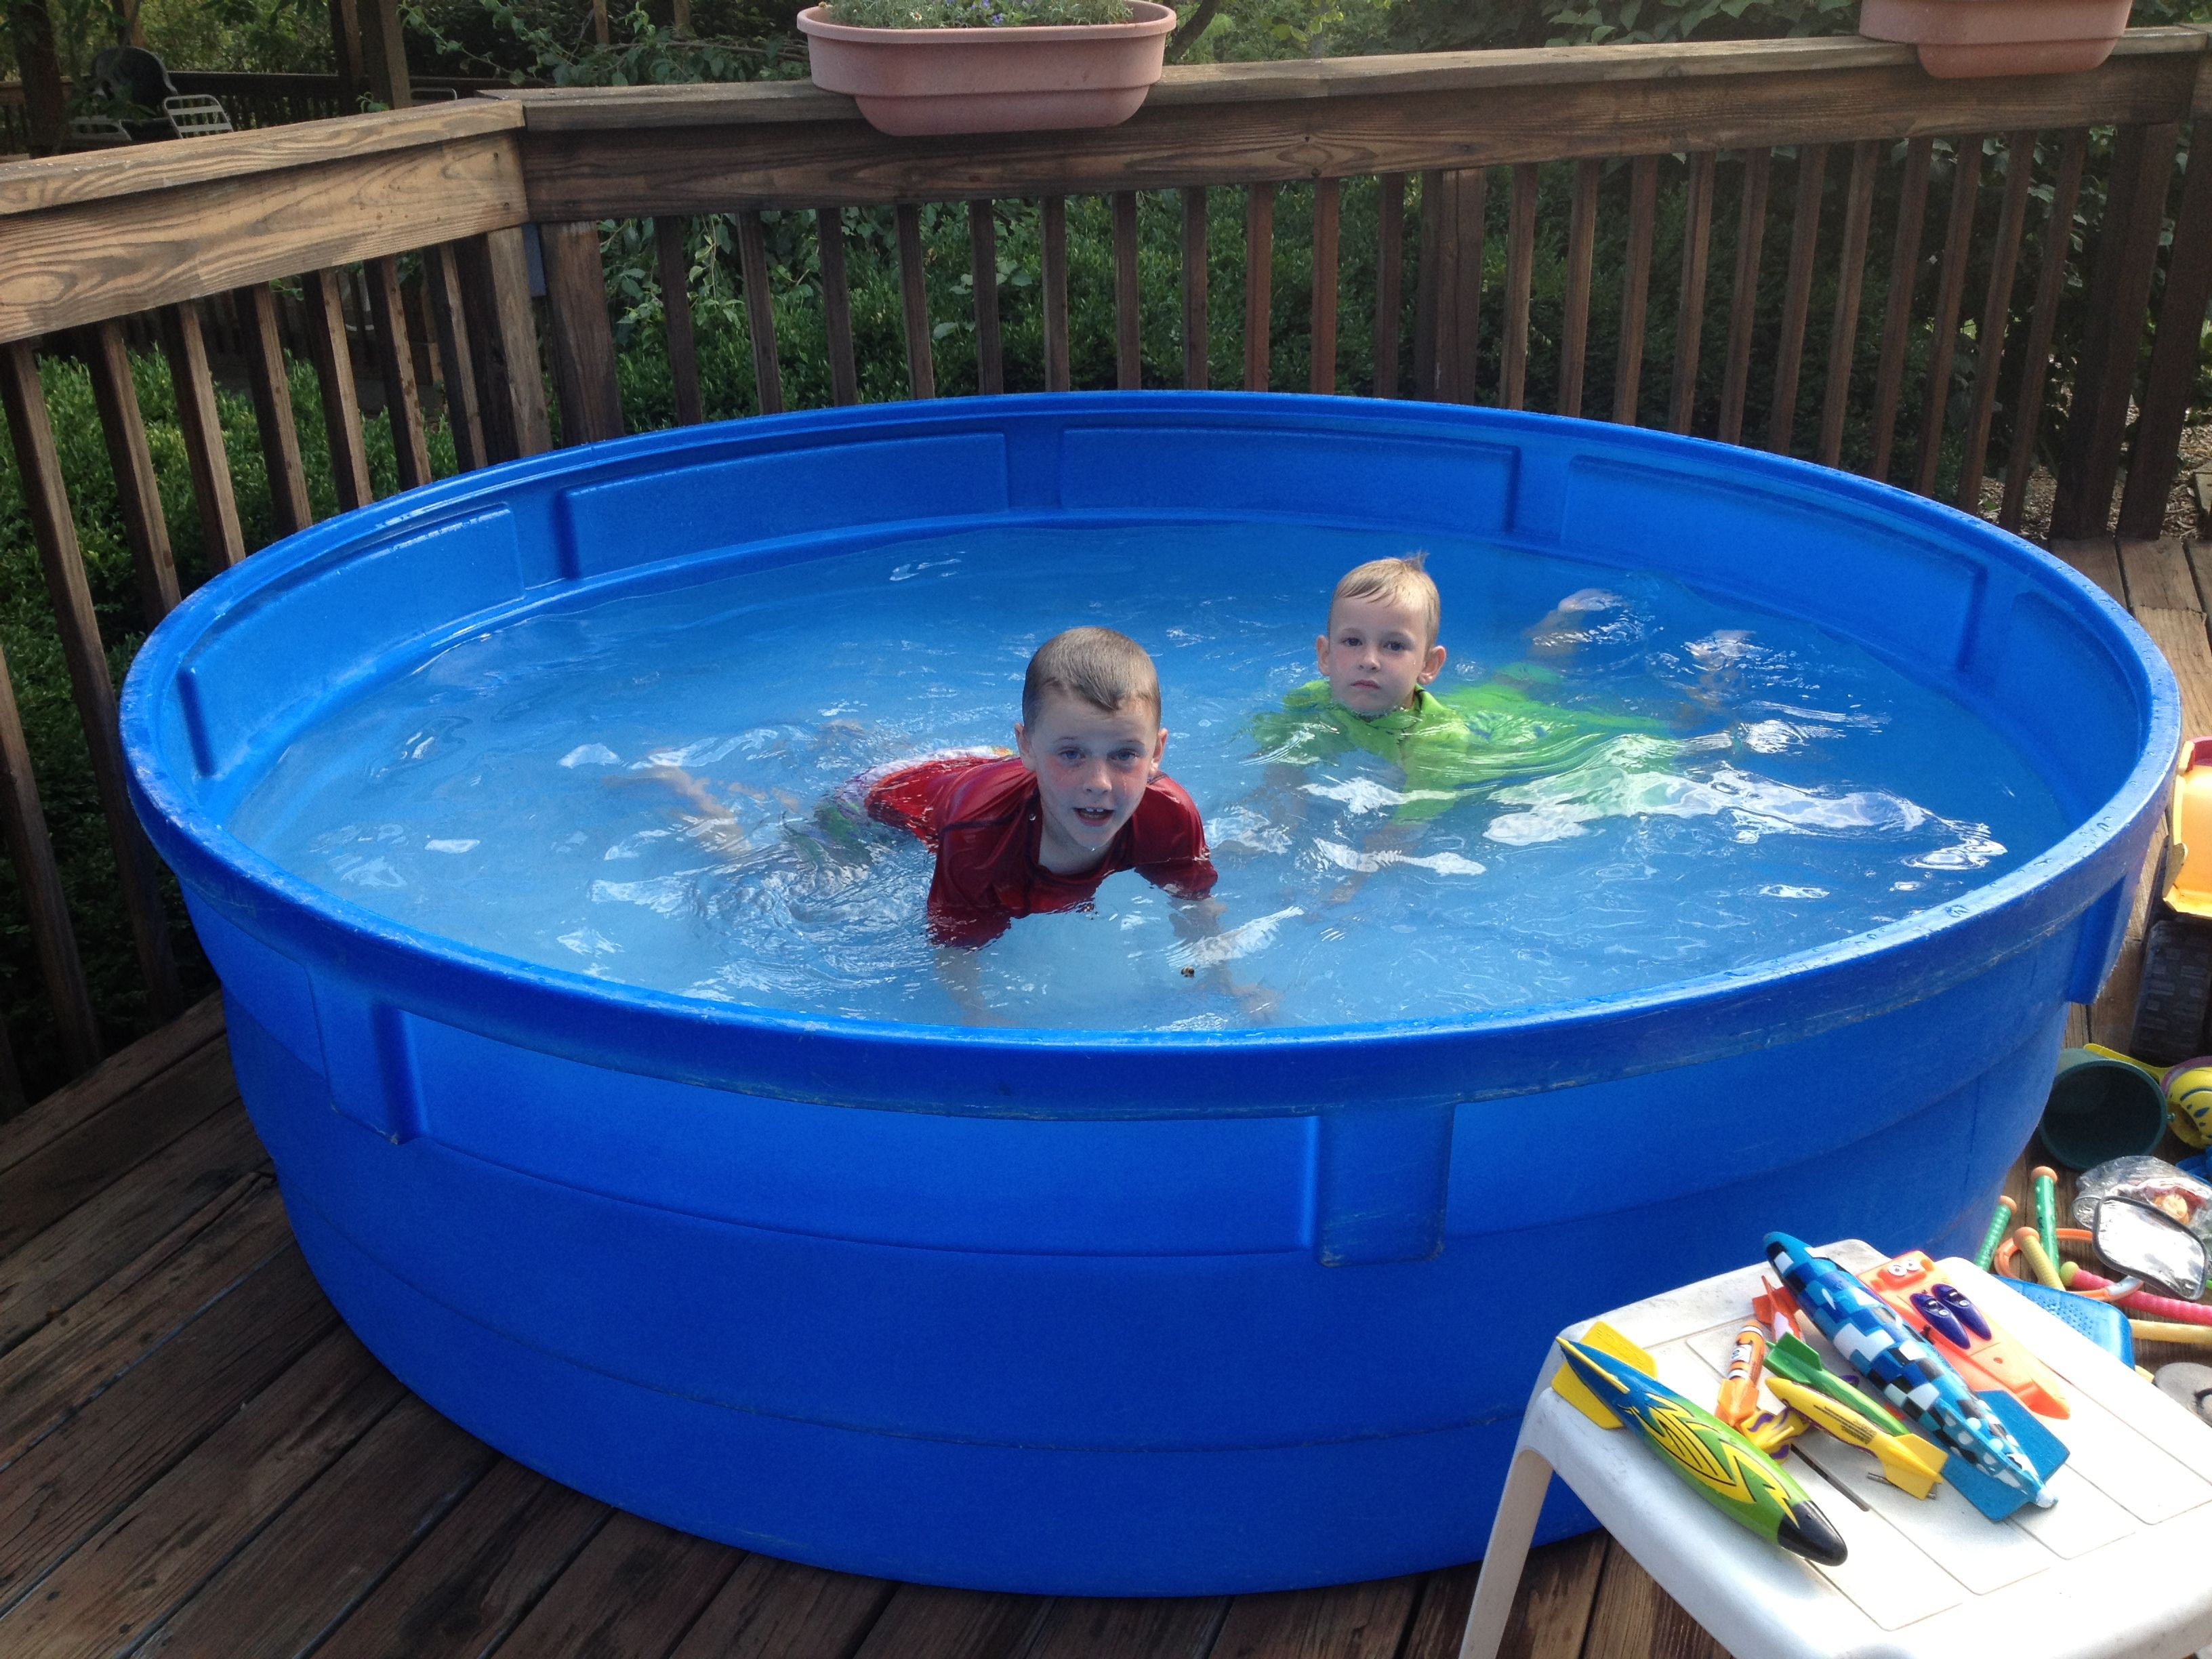 Plastic Pools For Kids hard plastic swimming pools for kids | animal stuff | pinterest